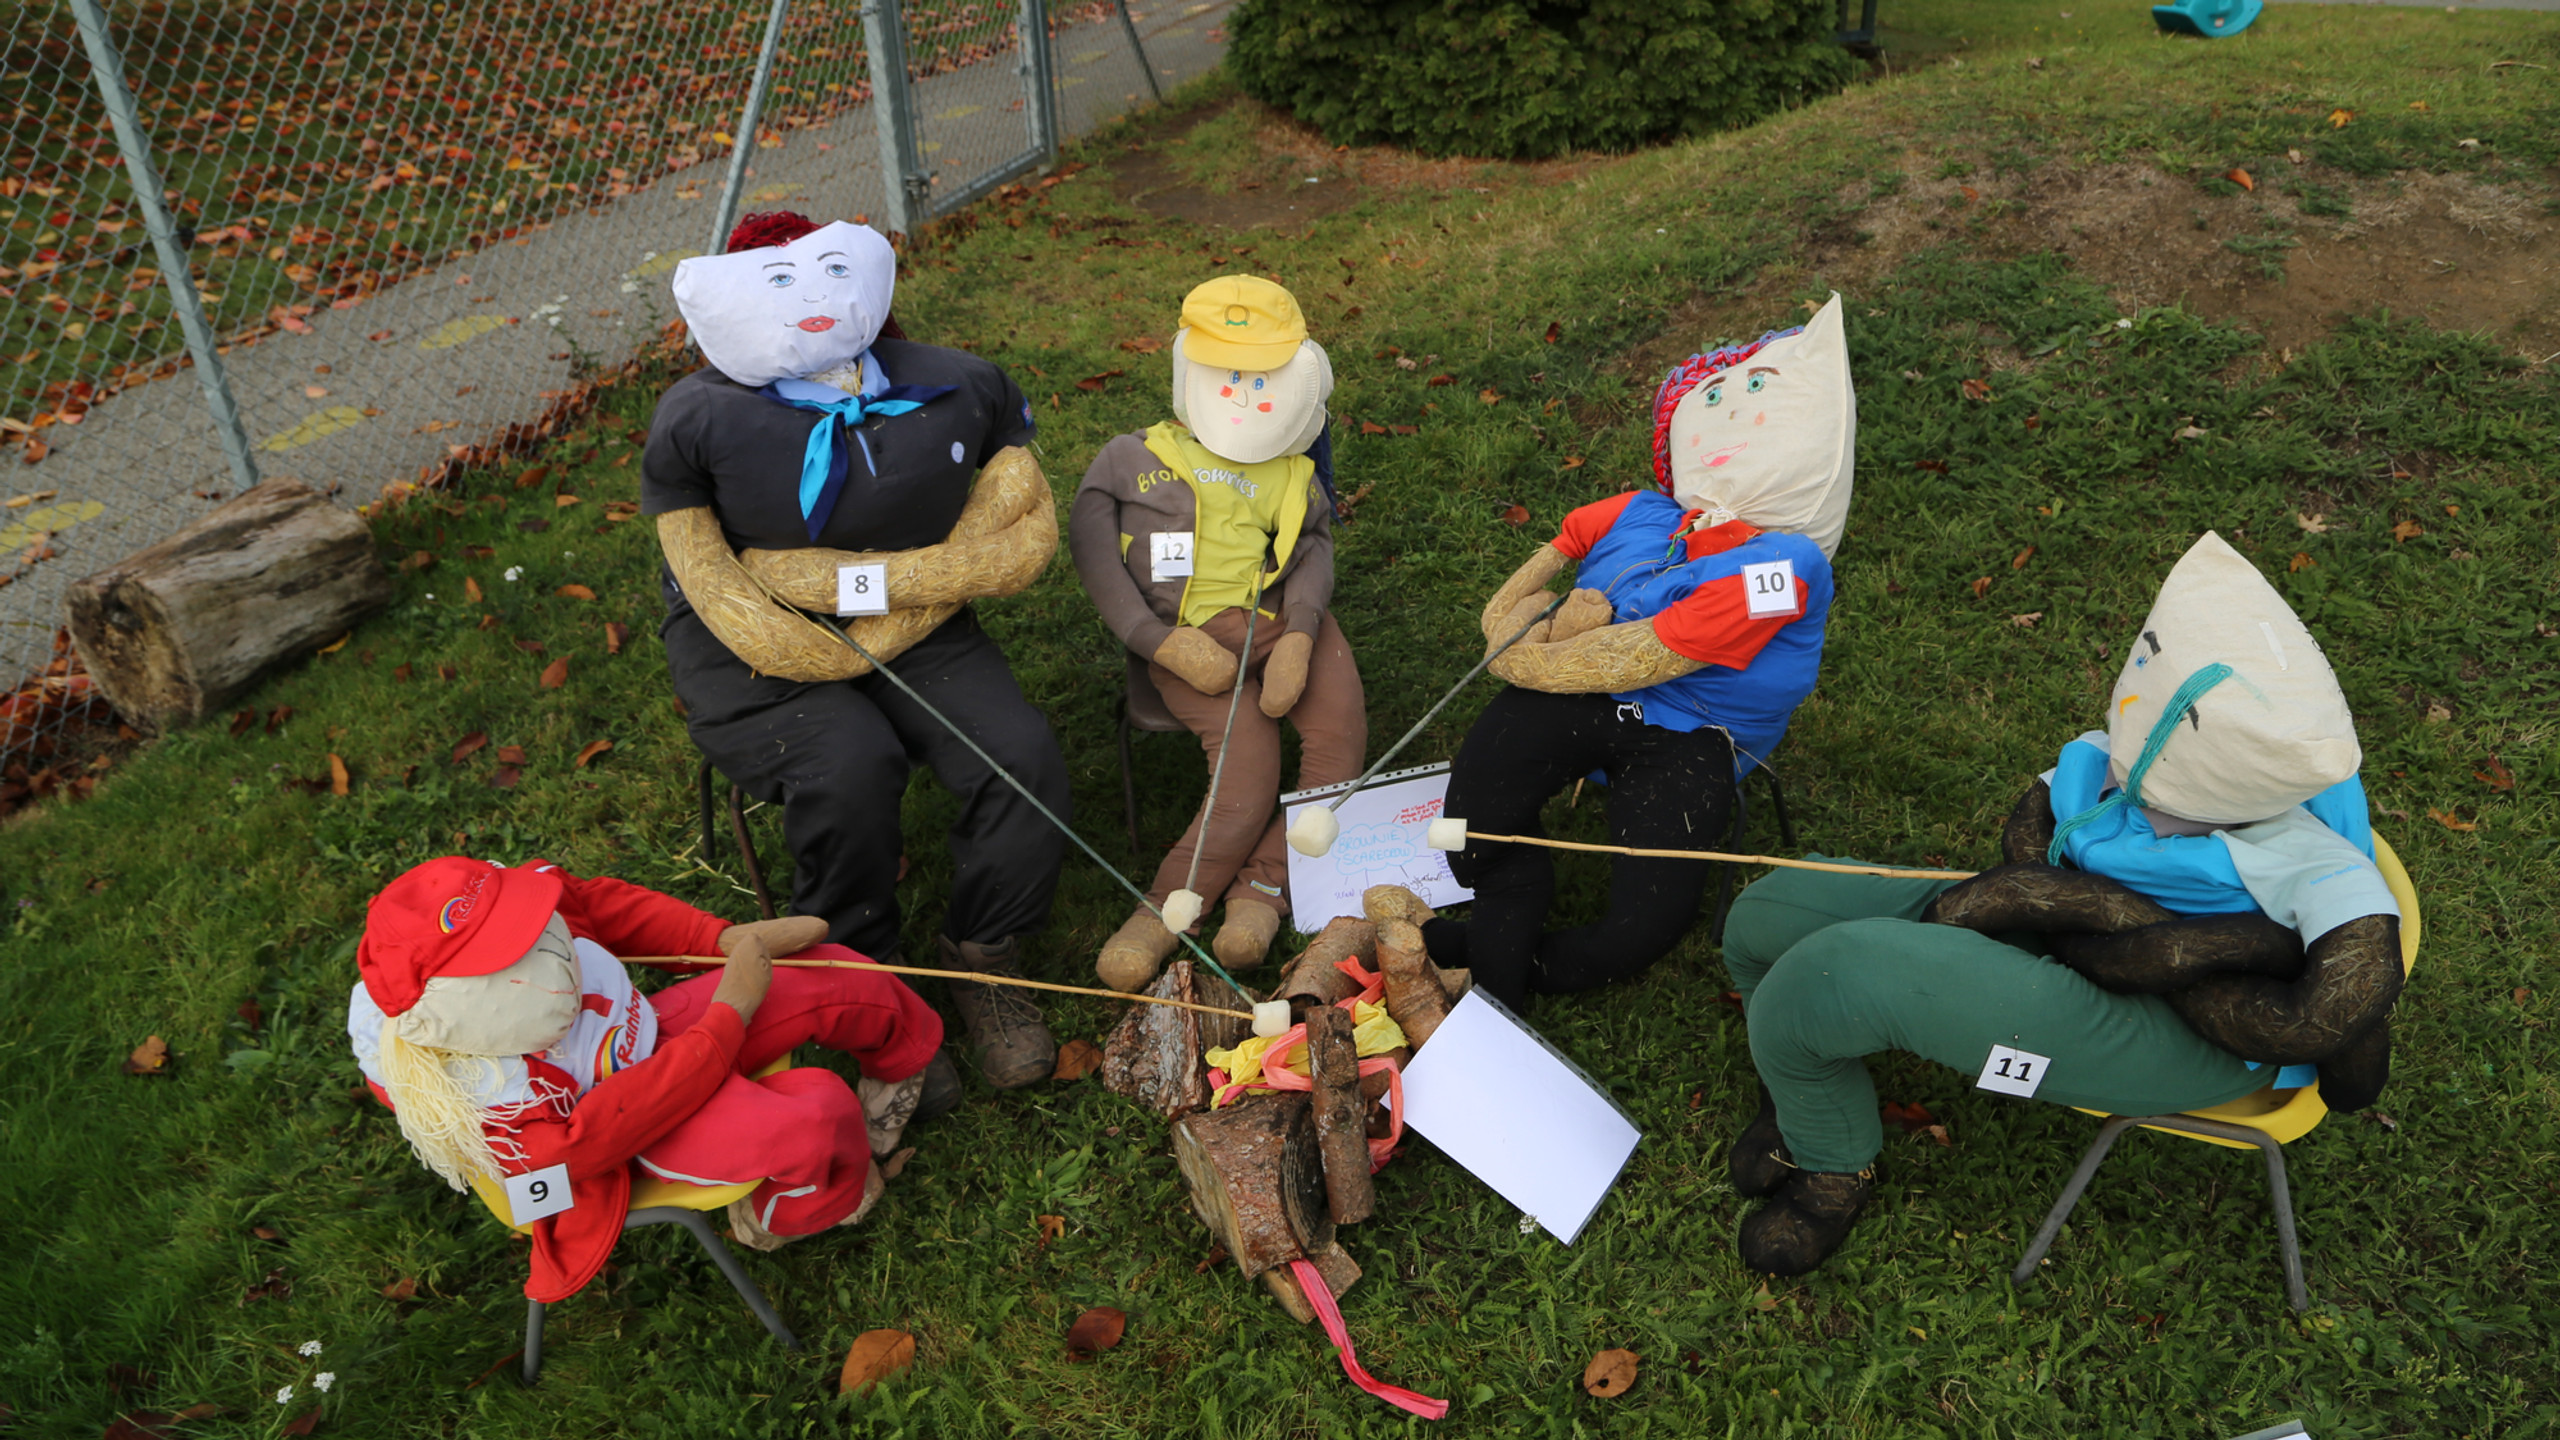 Camping scarecrows